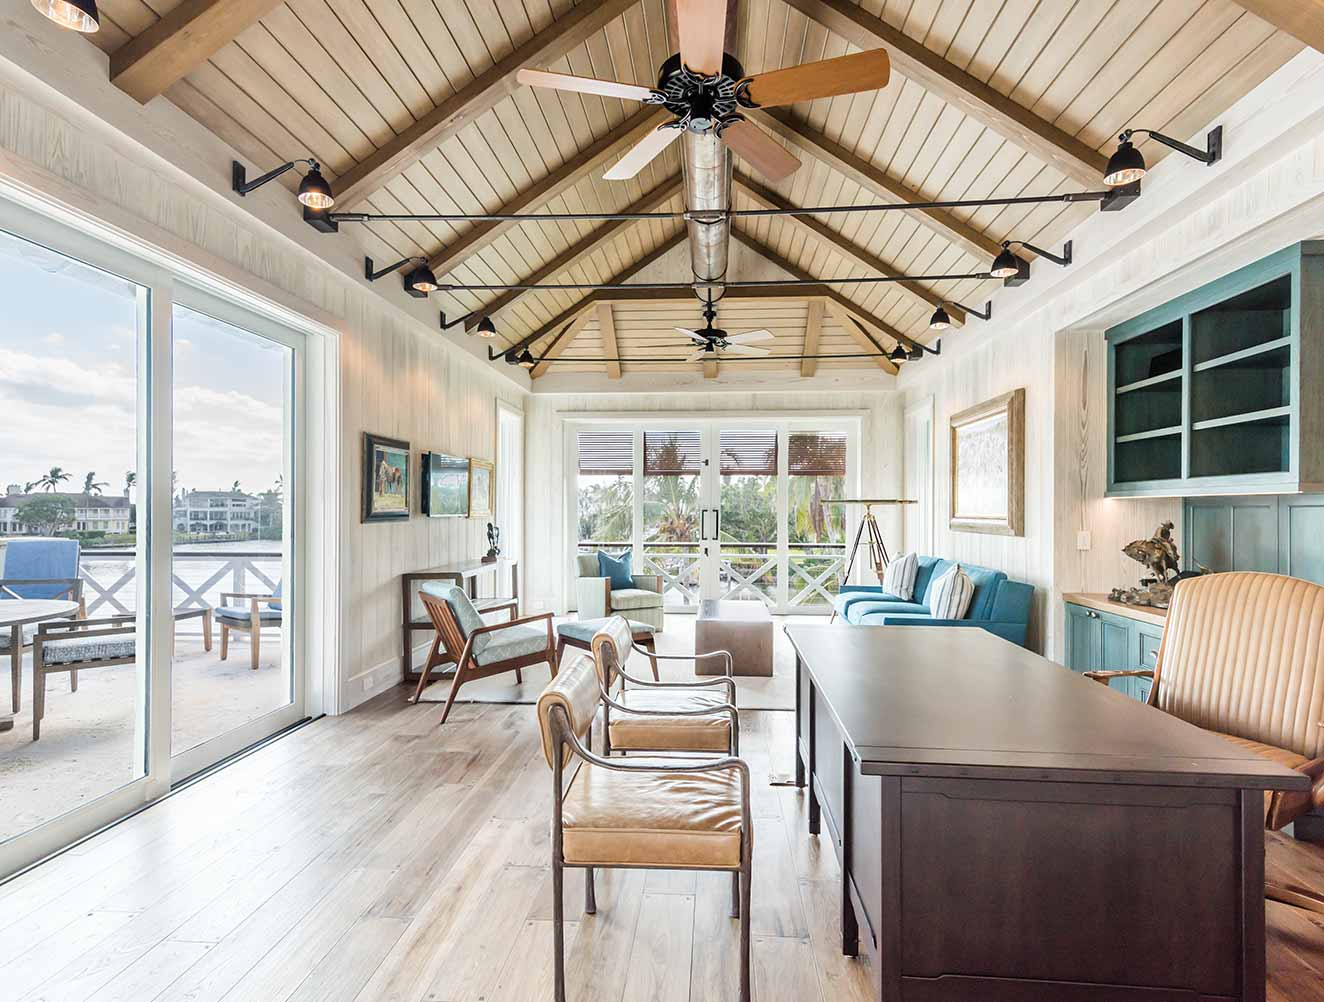 Rustic Modern Ceiling Design Collection in Naples Florida homes. Designed by Kukk Architecture & Design Naples.